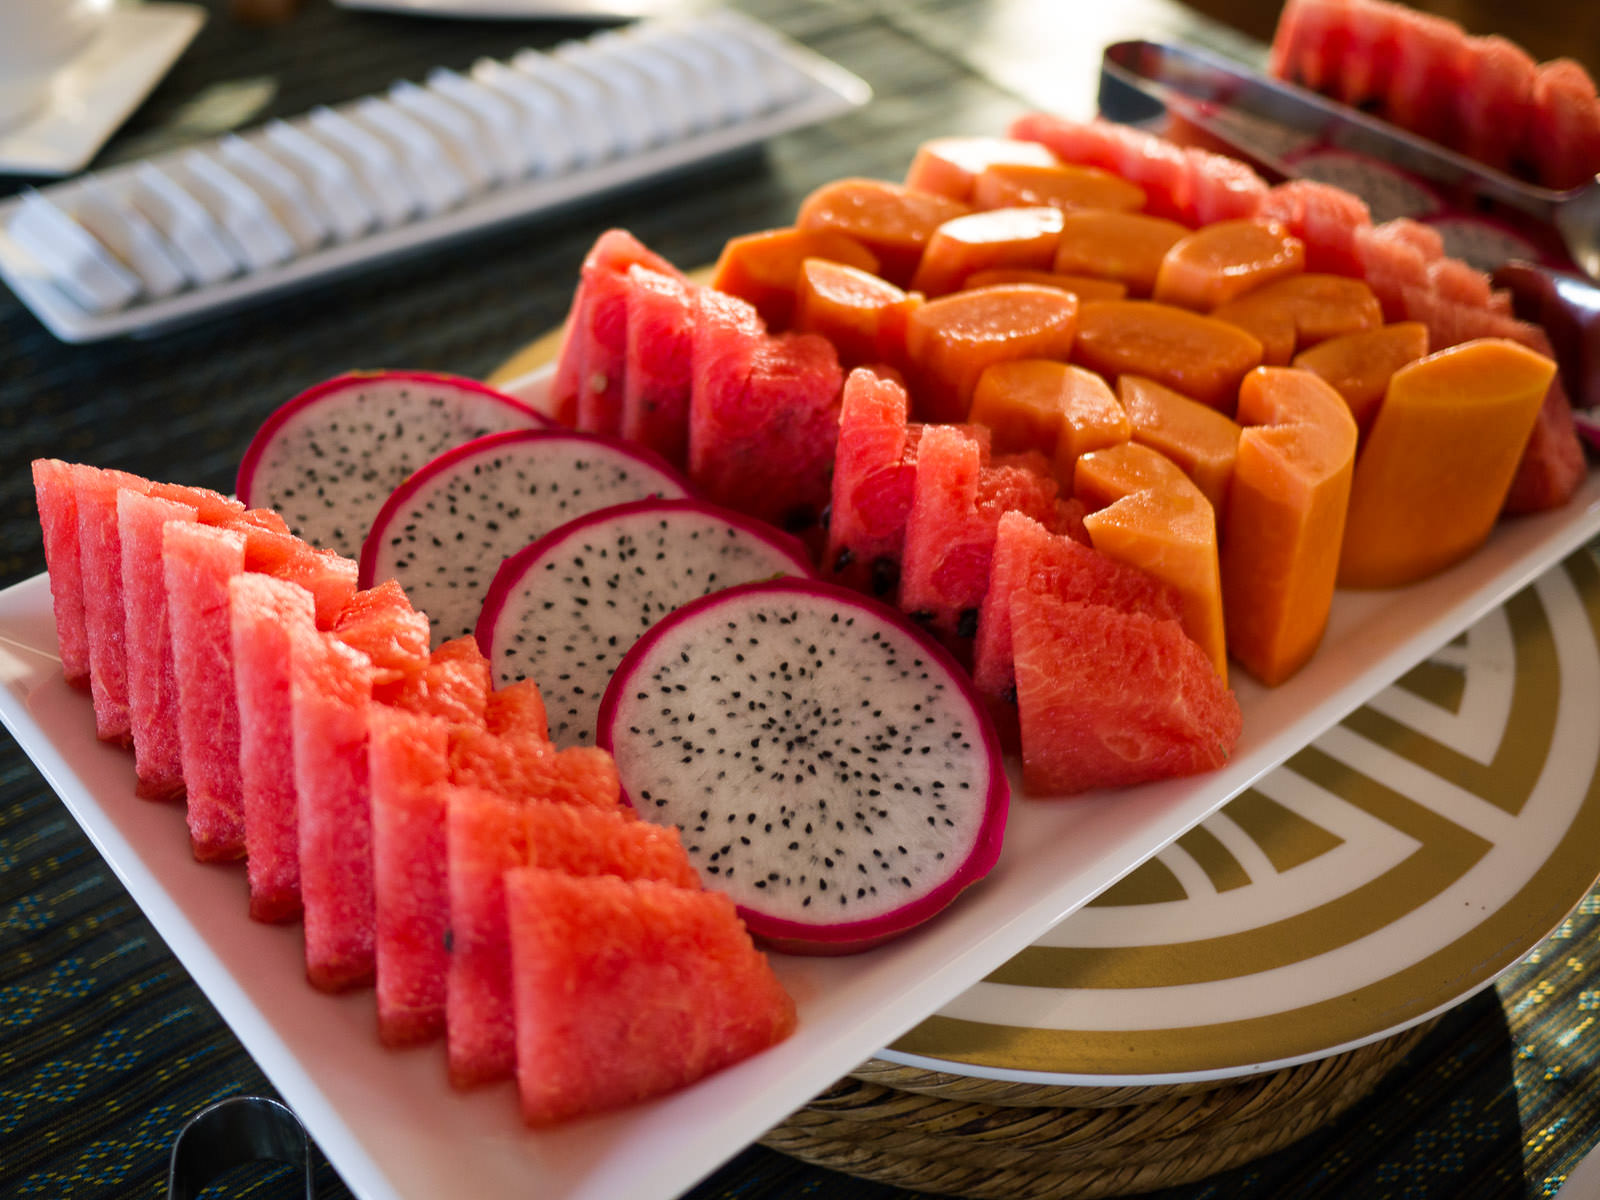 Watermelon, dragon fruit and papaya